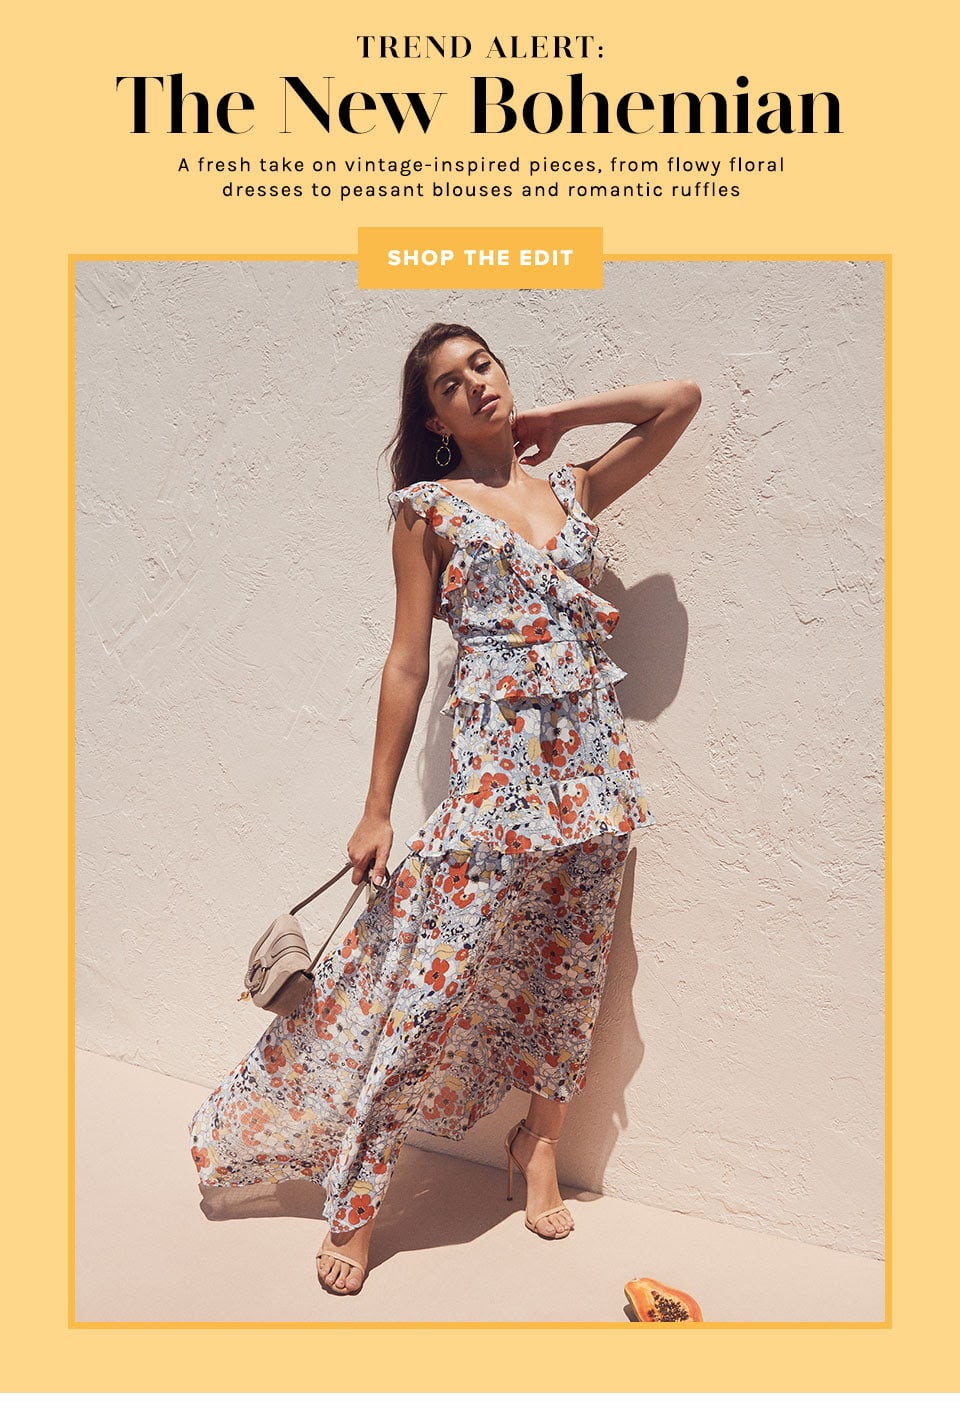 Trend Alert: The New Bohemian. A fresh take on vintage-inspired pieces, from flowy floral dresses to peasant blouses and romantic ruffles. Shop the Edit.